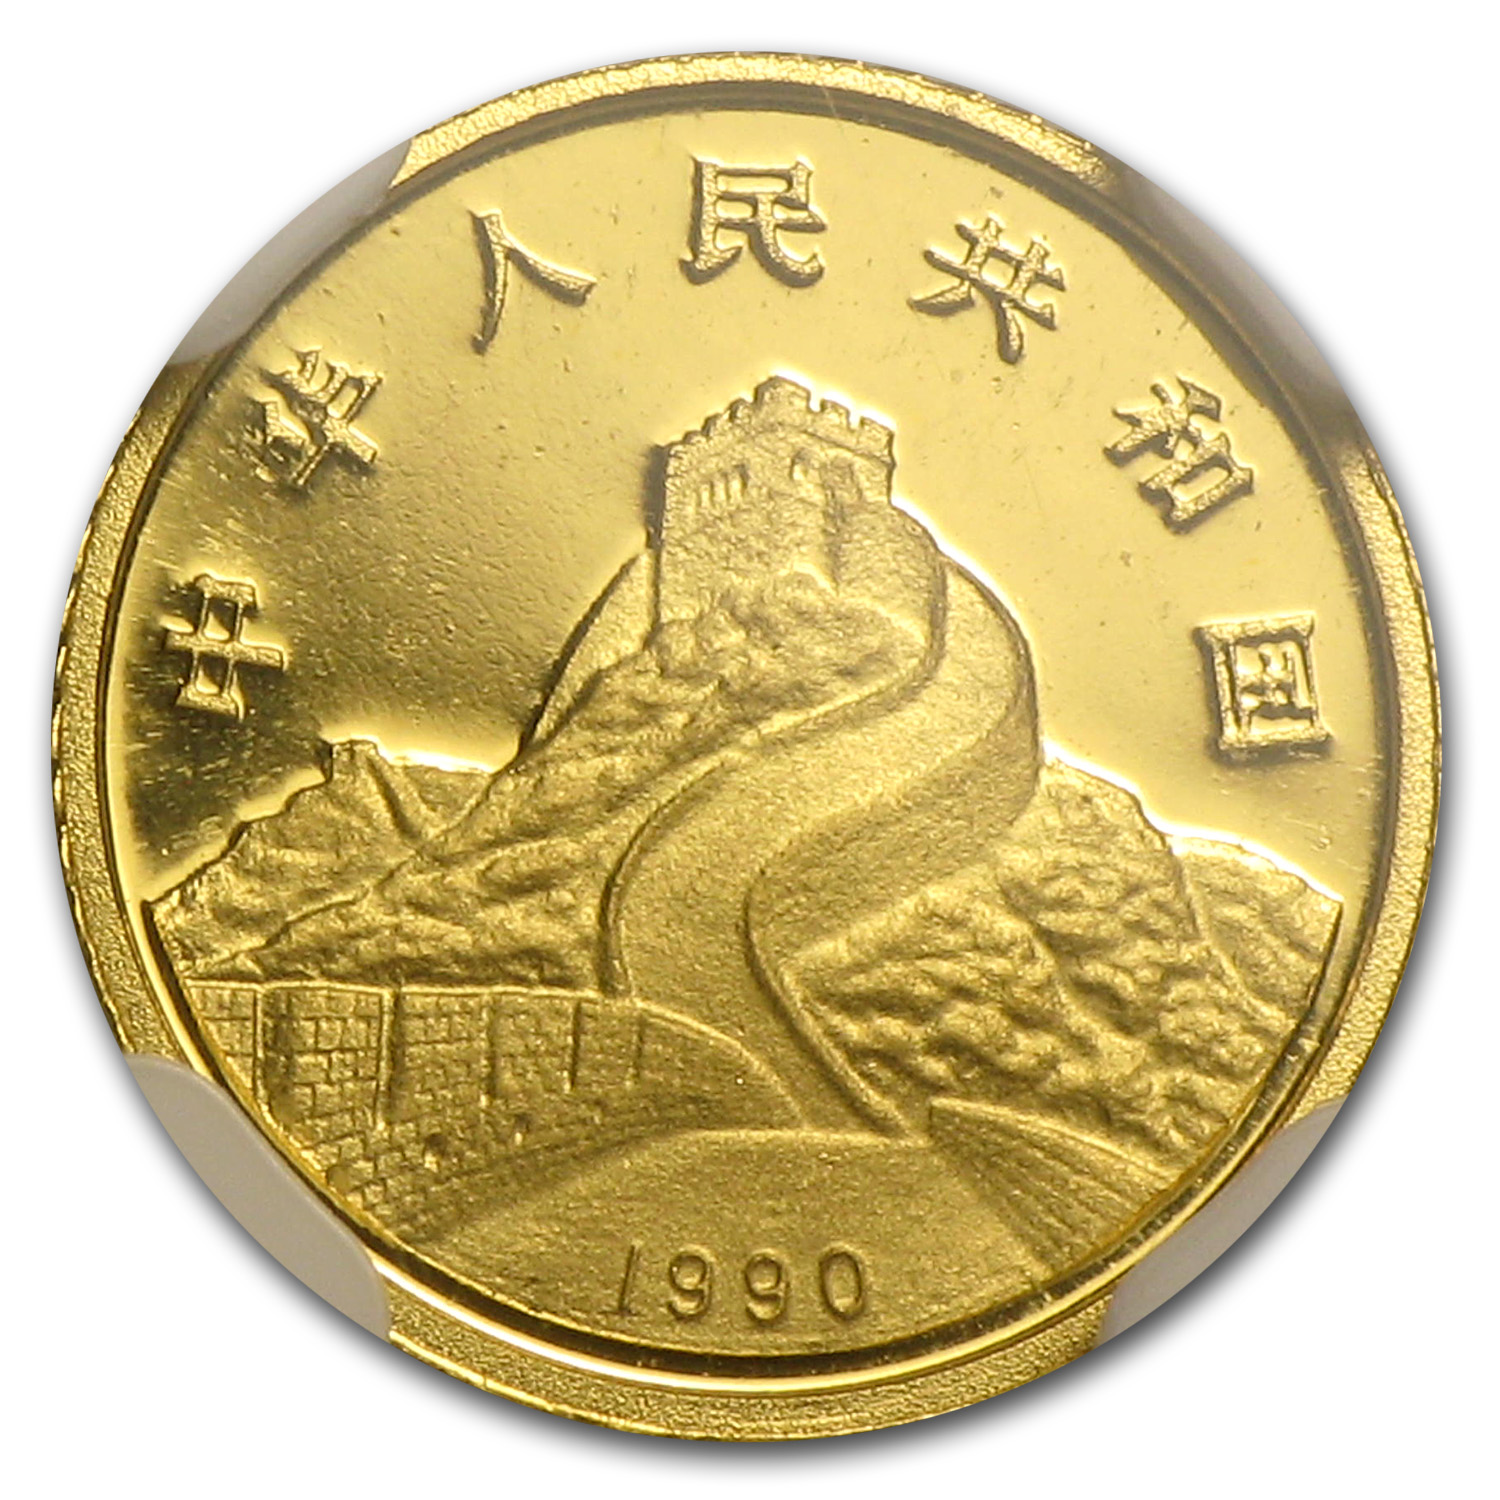 China 1990 1 gram Gold Dragon & Phoenix Coin PF-67 NGC